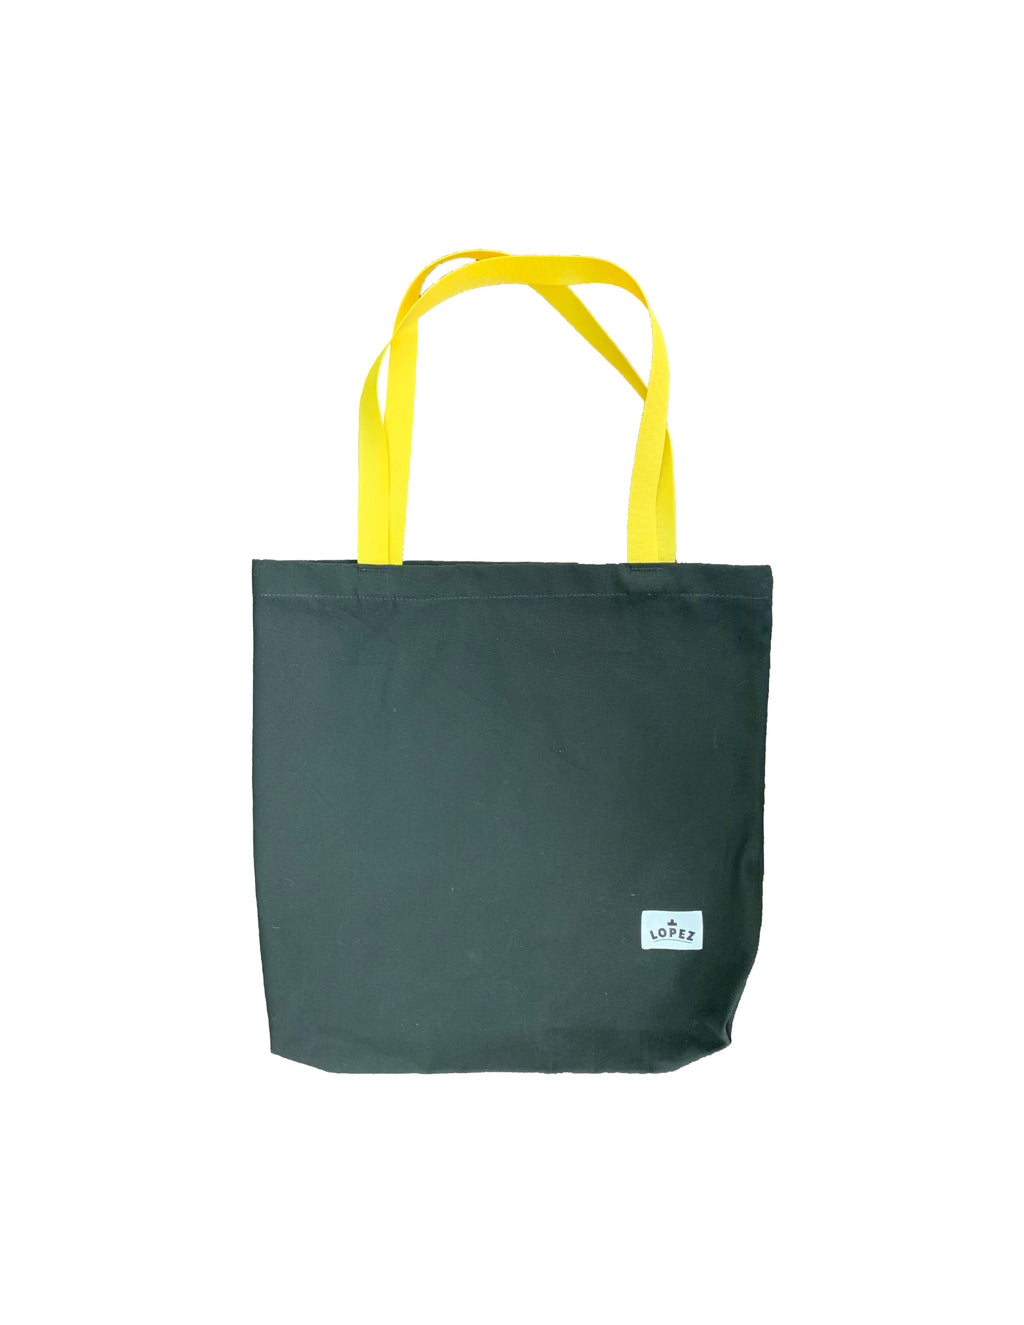 Shop Tote - Green